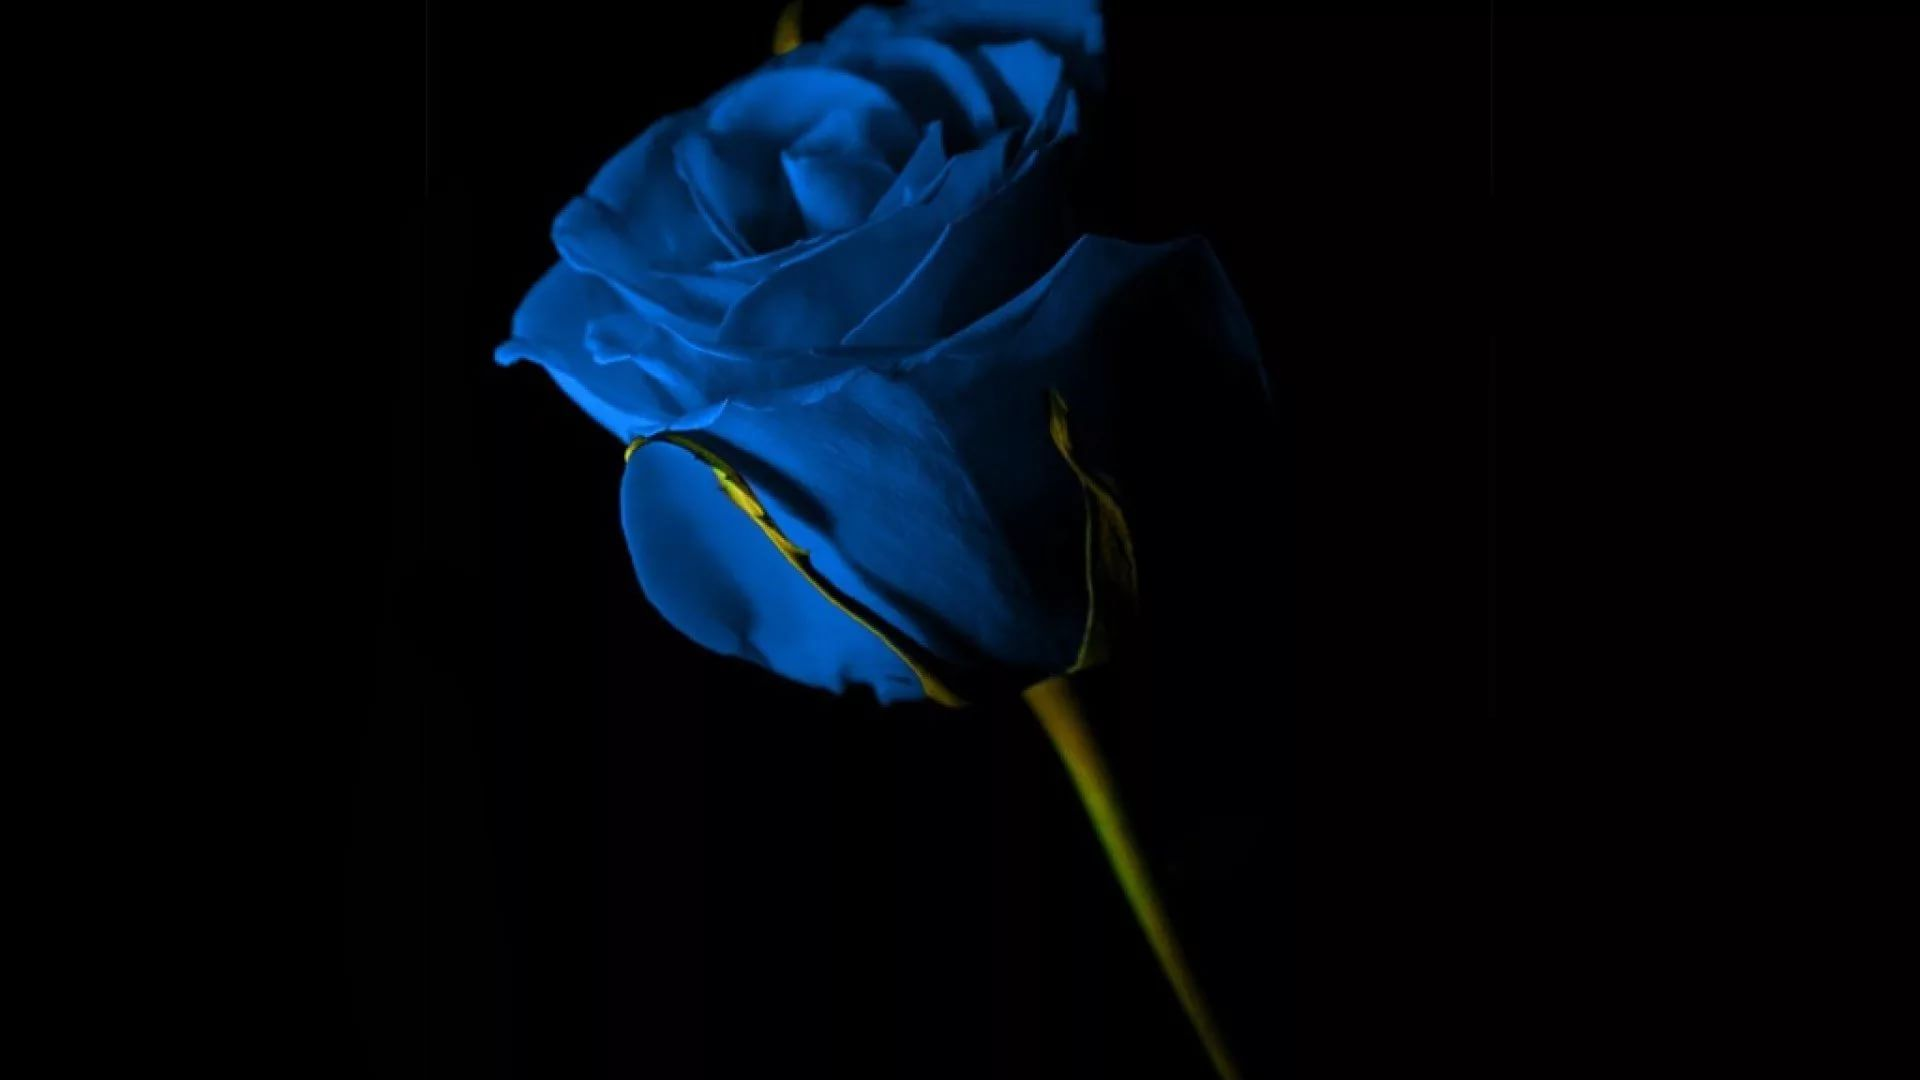 Blue Rose download wallpaper image